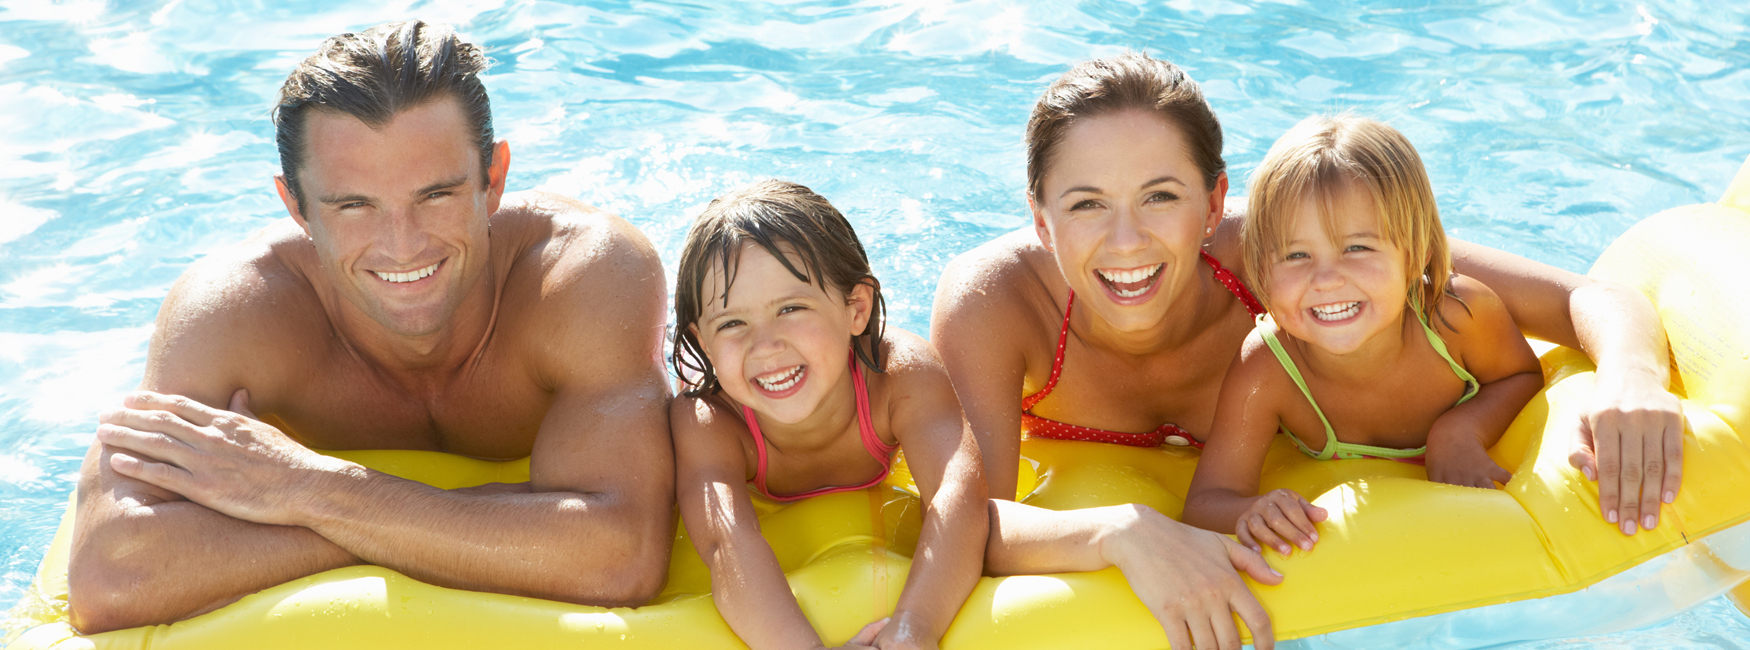 aarons-elite-pool-service-children-swimming-pool